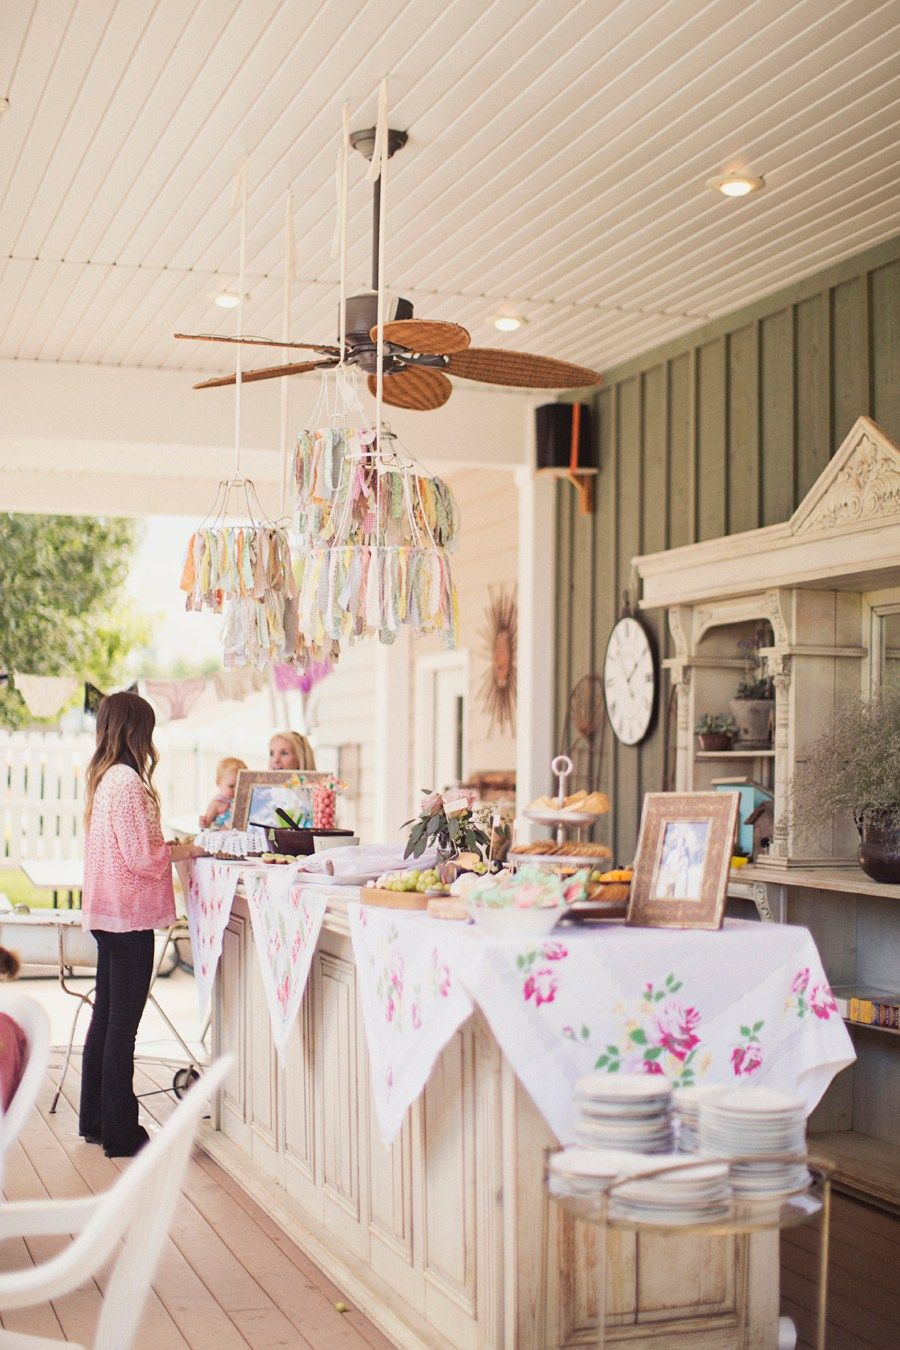 bridal shower 101 everything you need to know about hosting etiquette party planning gifts and more